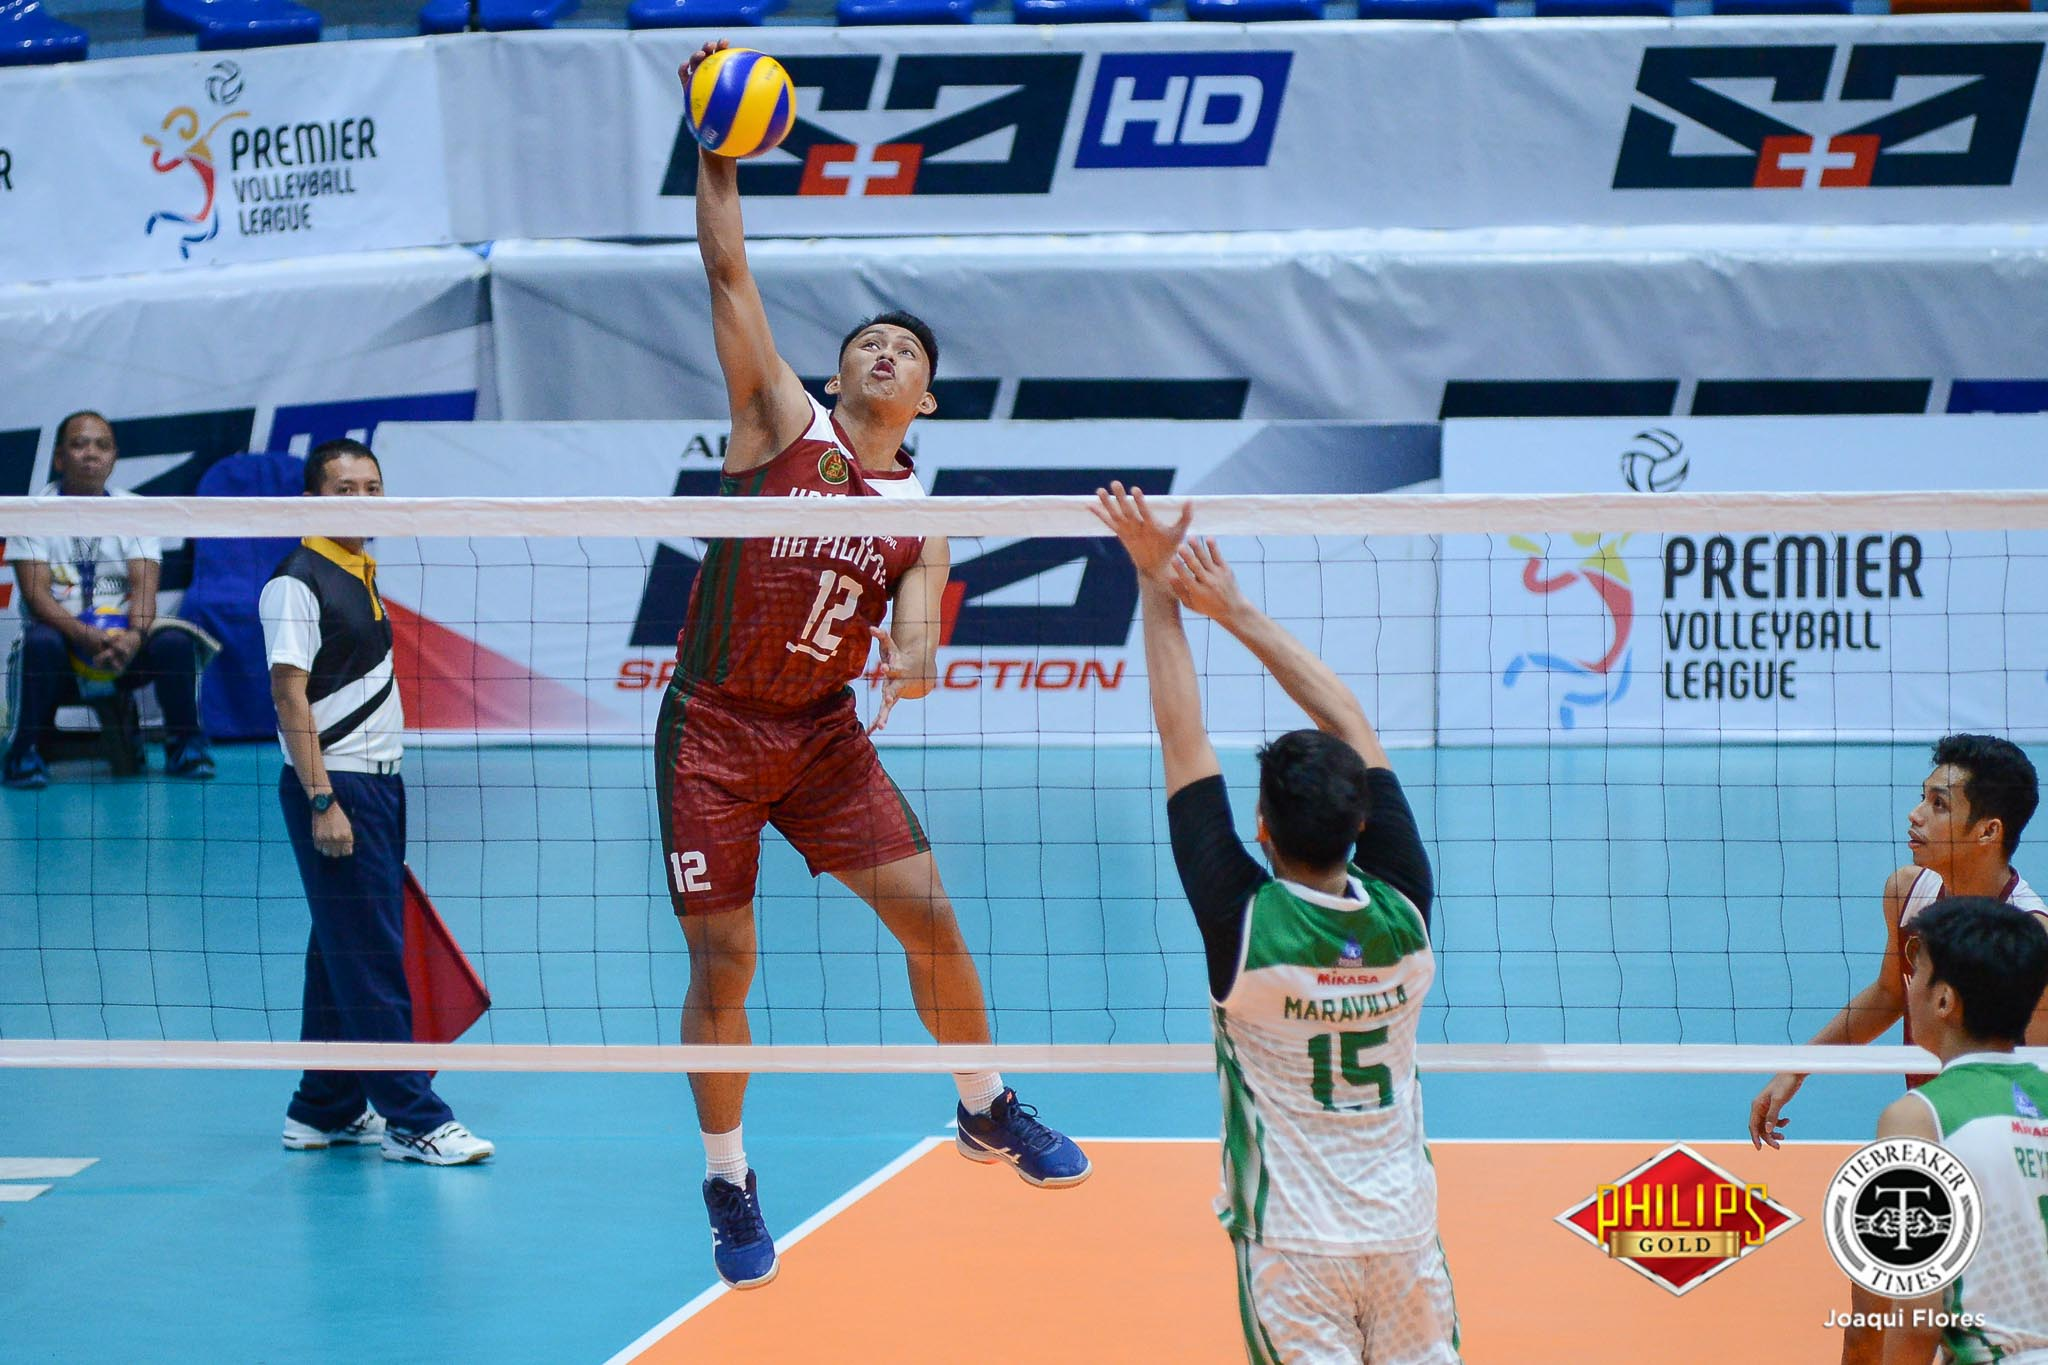 Tiebreaker Times Mac Millete explodes for 31 as UP slips past La Salle DLSU News PVL UP Volleyball  UP Men's Volleyball Norman Miguel Miguel Nasol Mark Millete Joshua Castillo Hans Chuacuco Gian San Pascual DLSU Men's Volleyball Cris Dumago 2018 PVL Season 2018 PVL Men's Collegiate Conference